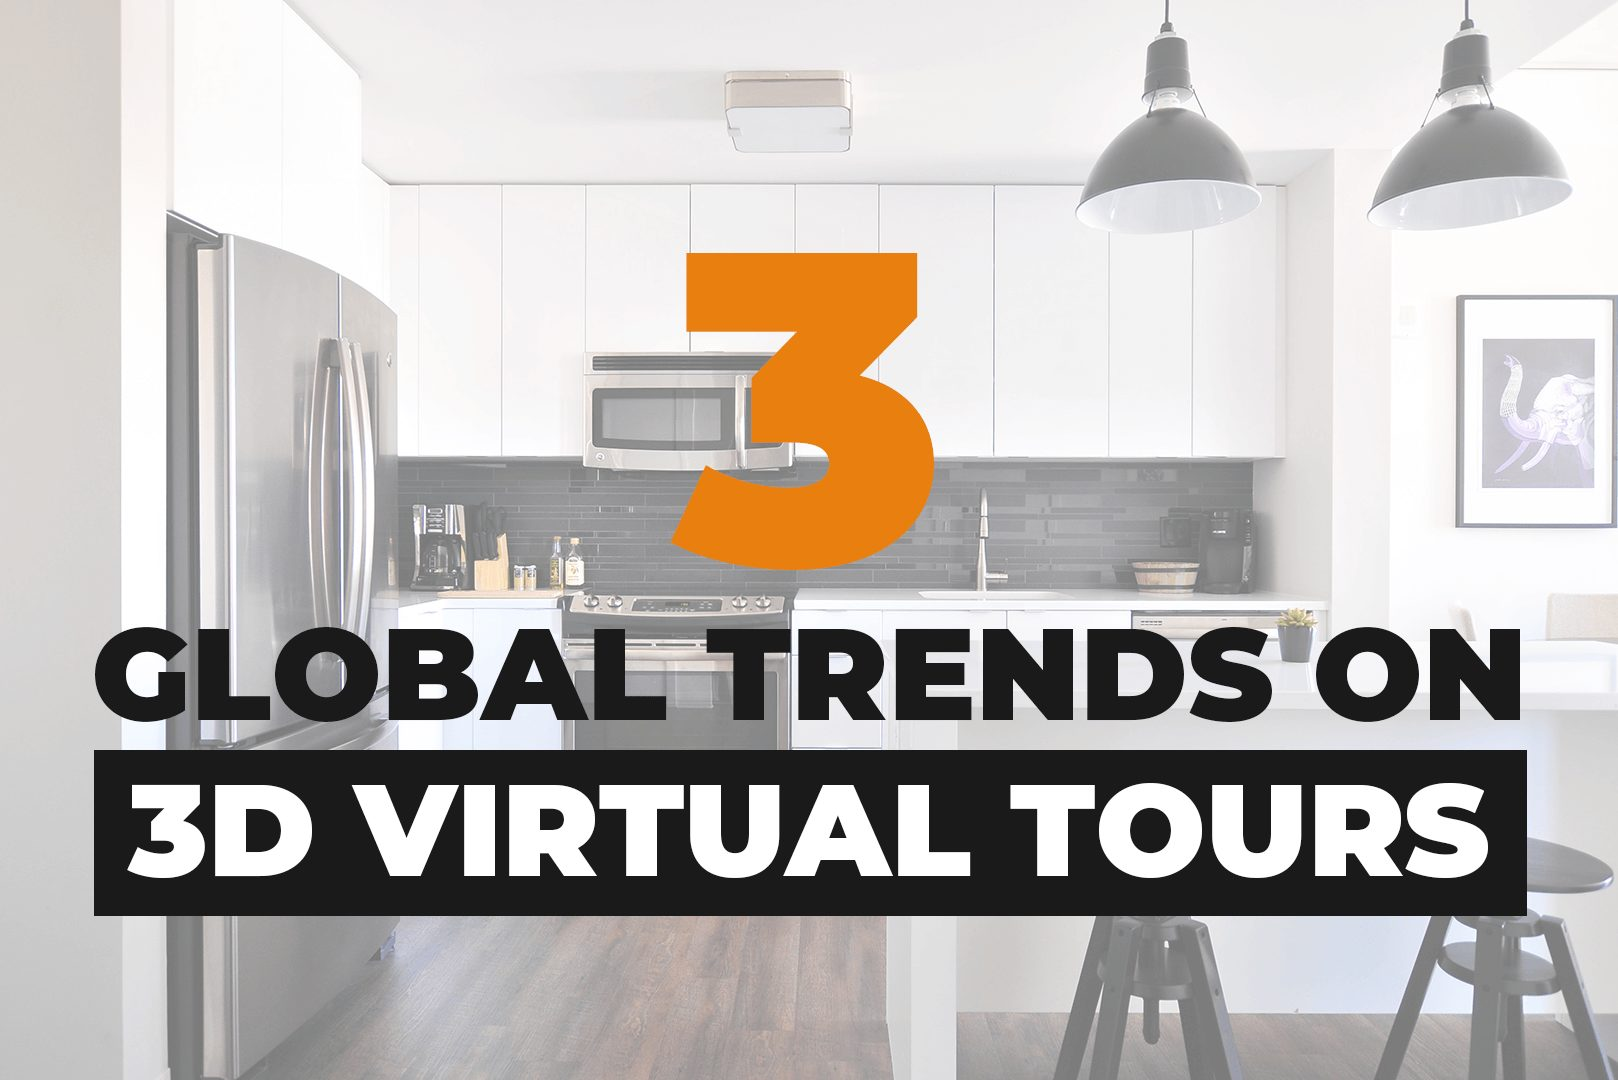 3 Global Trends On 3D Virtual Tours